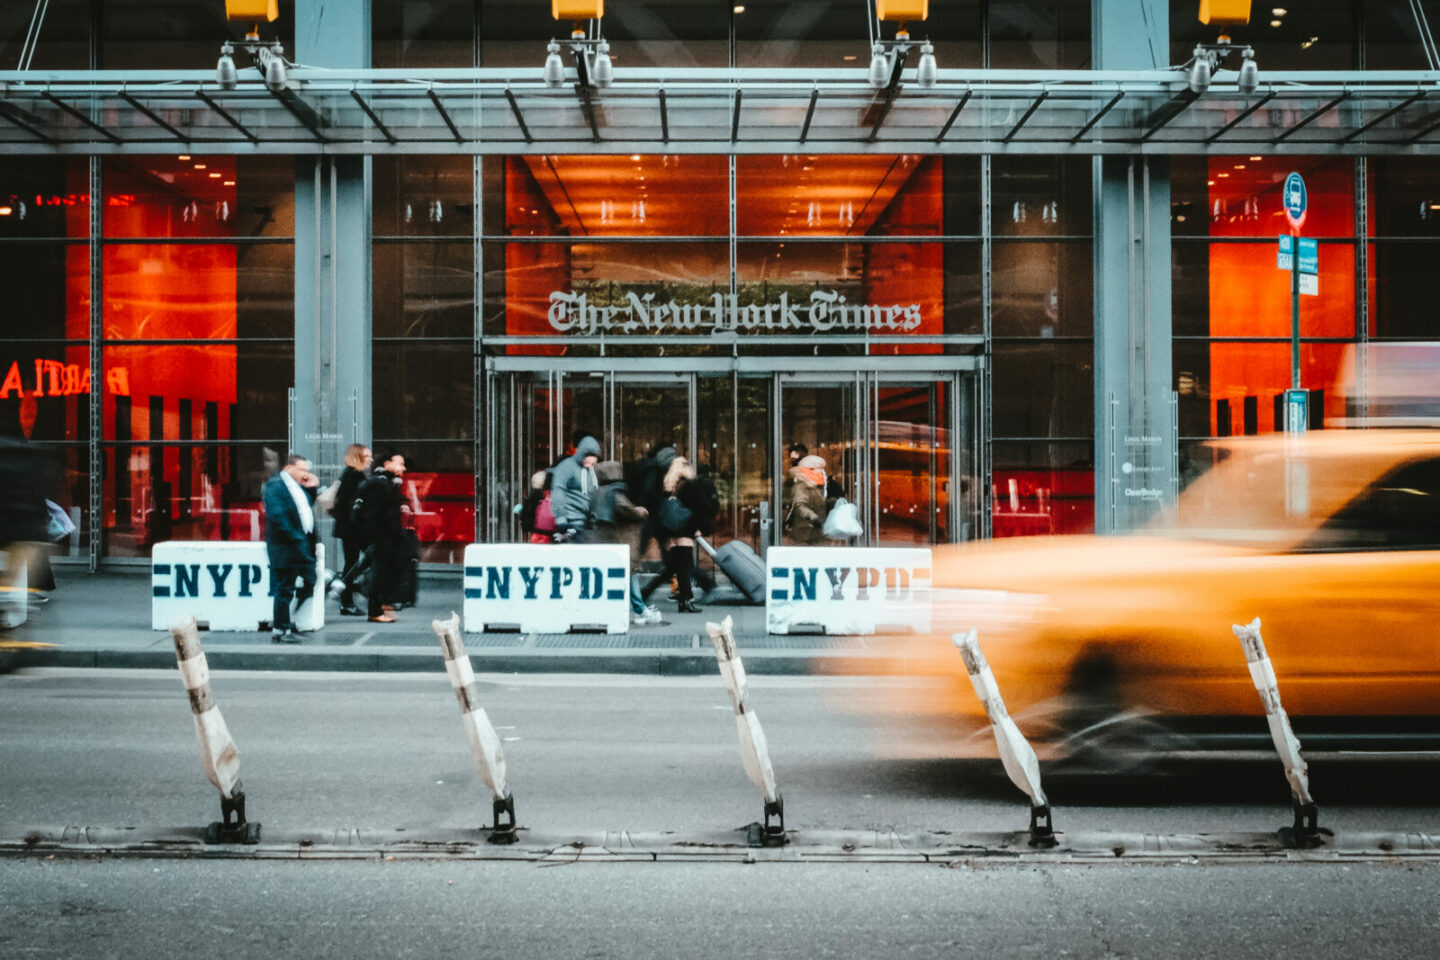 New York Times Building Steckbrief